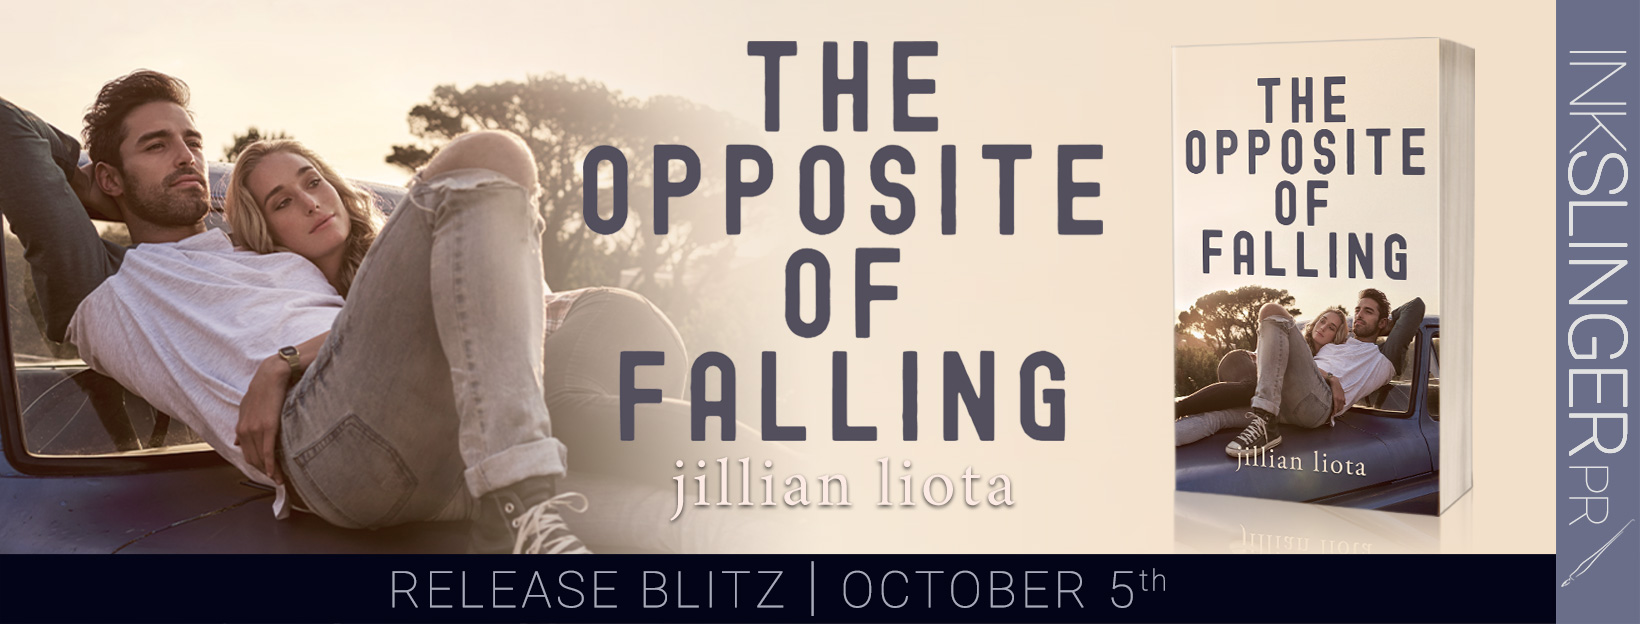 Check out The Opposite of Falling by Jillian Liota (A Sweet Romantic Read)